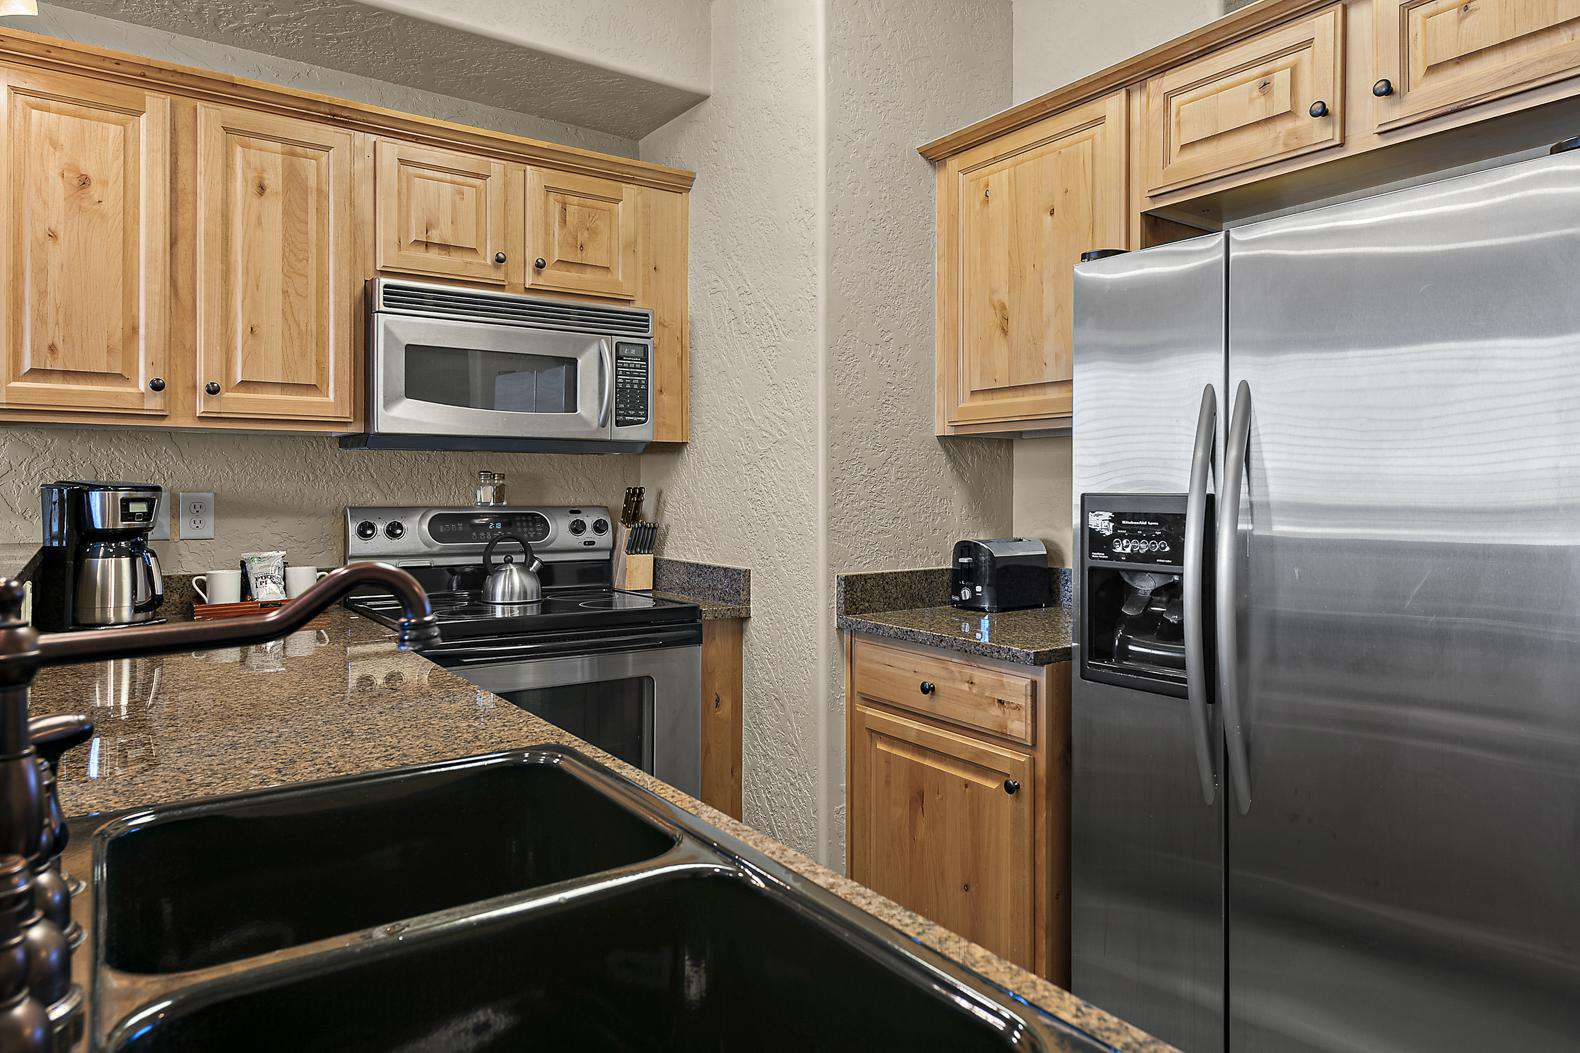 Quality kitchen with fridge/freezer, oven/range, microwave, and coffee maker